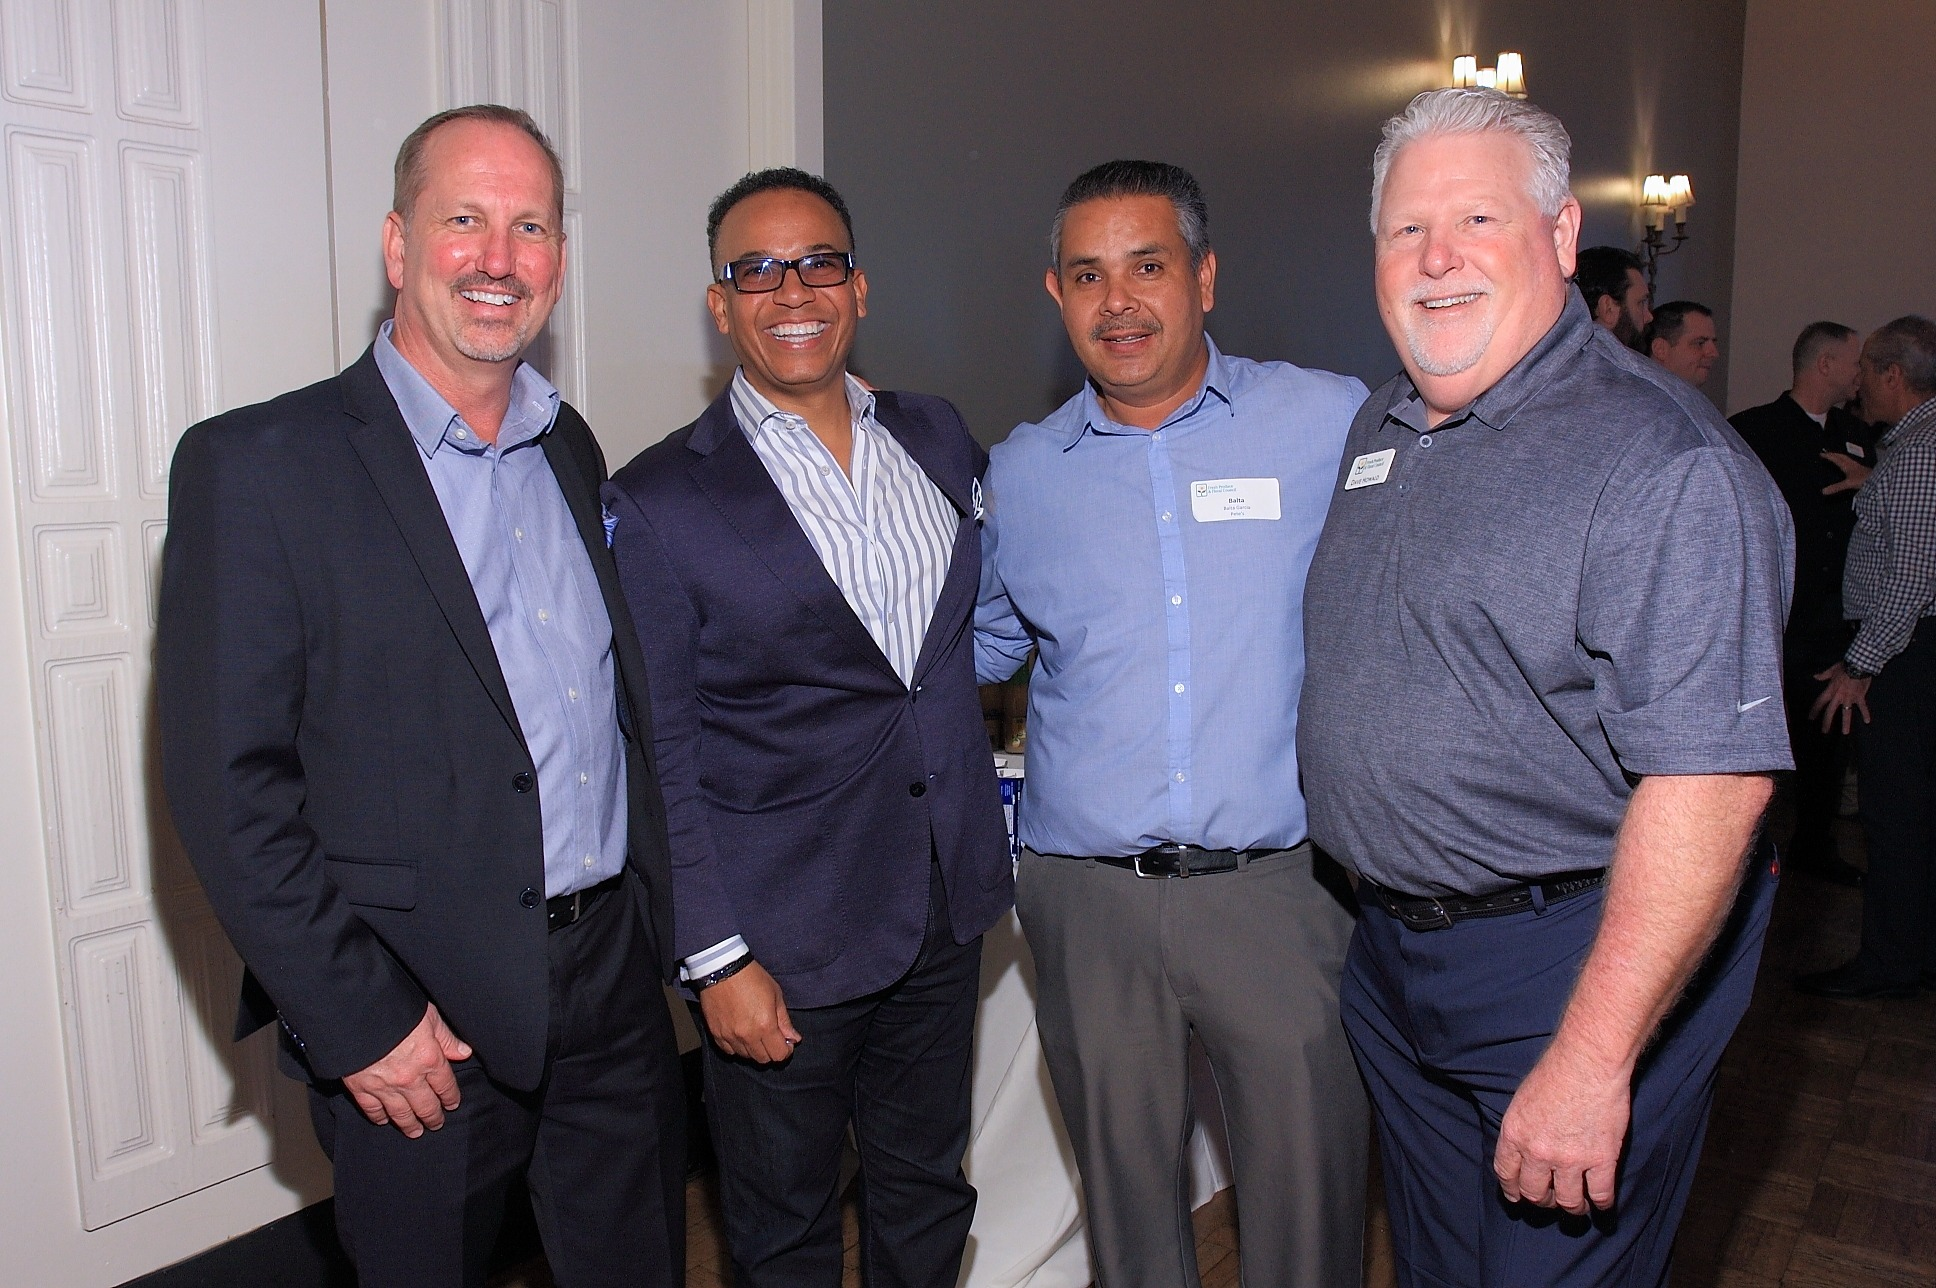 Greg Corrigan of Raley's Supermarkets with Robert Thompson of FreshSource, LLC, Baltazar Garcia of Pete's and Dave Howald of Pear Bureau Northwest